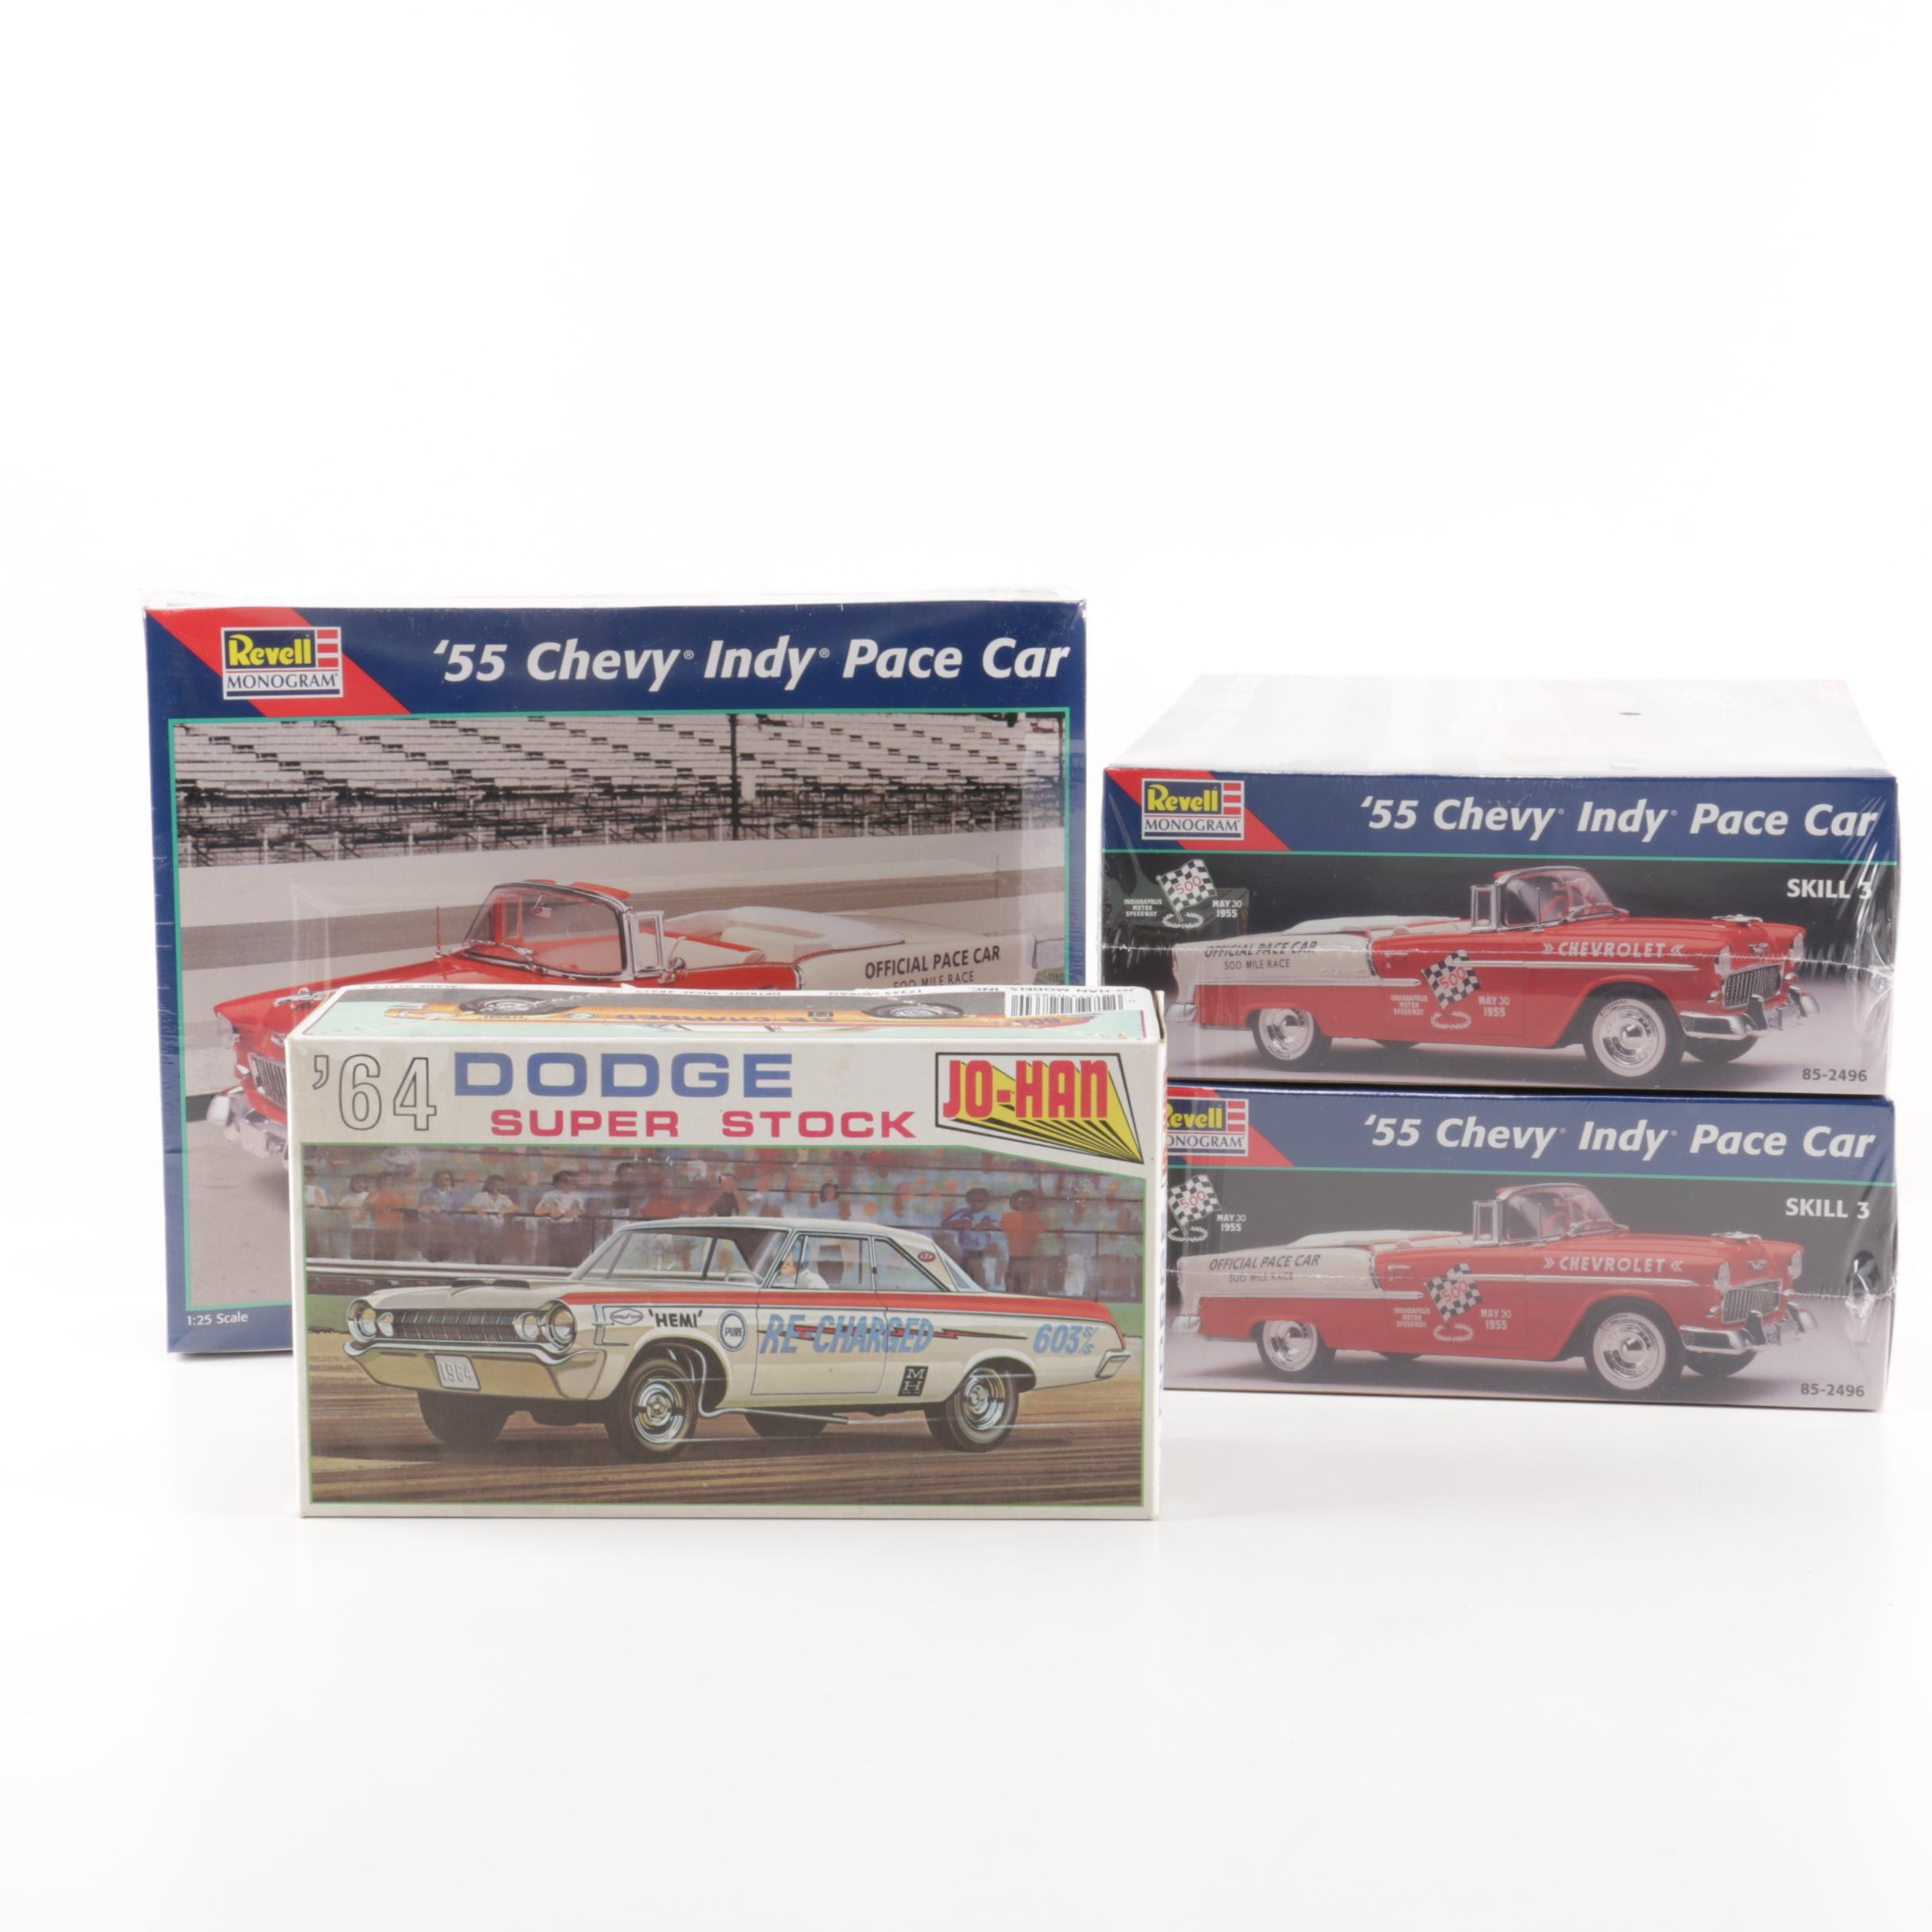 '55 Chevy Indy Pace Car Models by Revell and '64 Dodge by Jo-Han